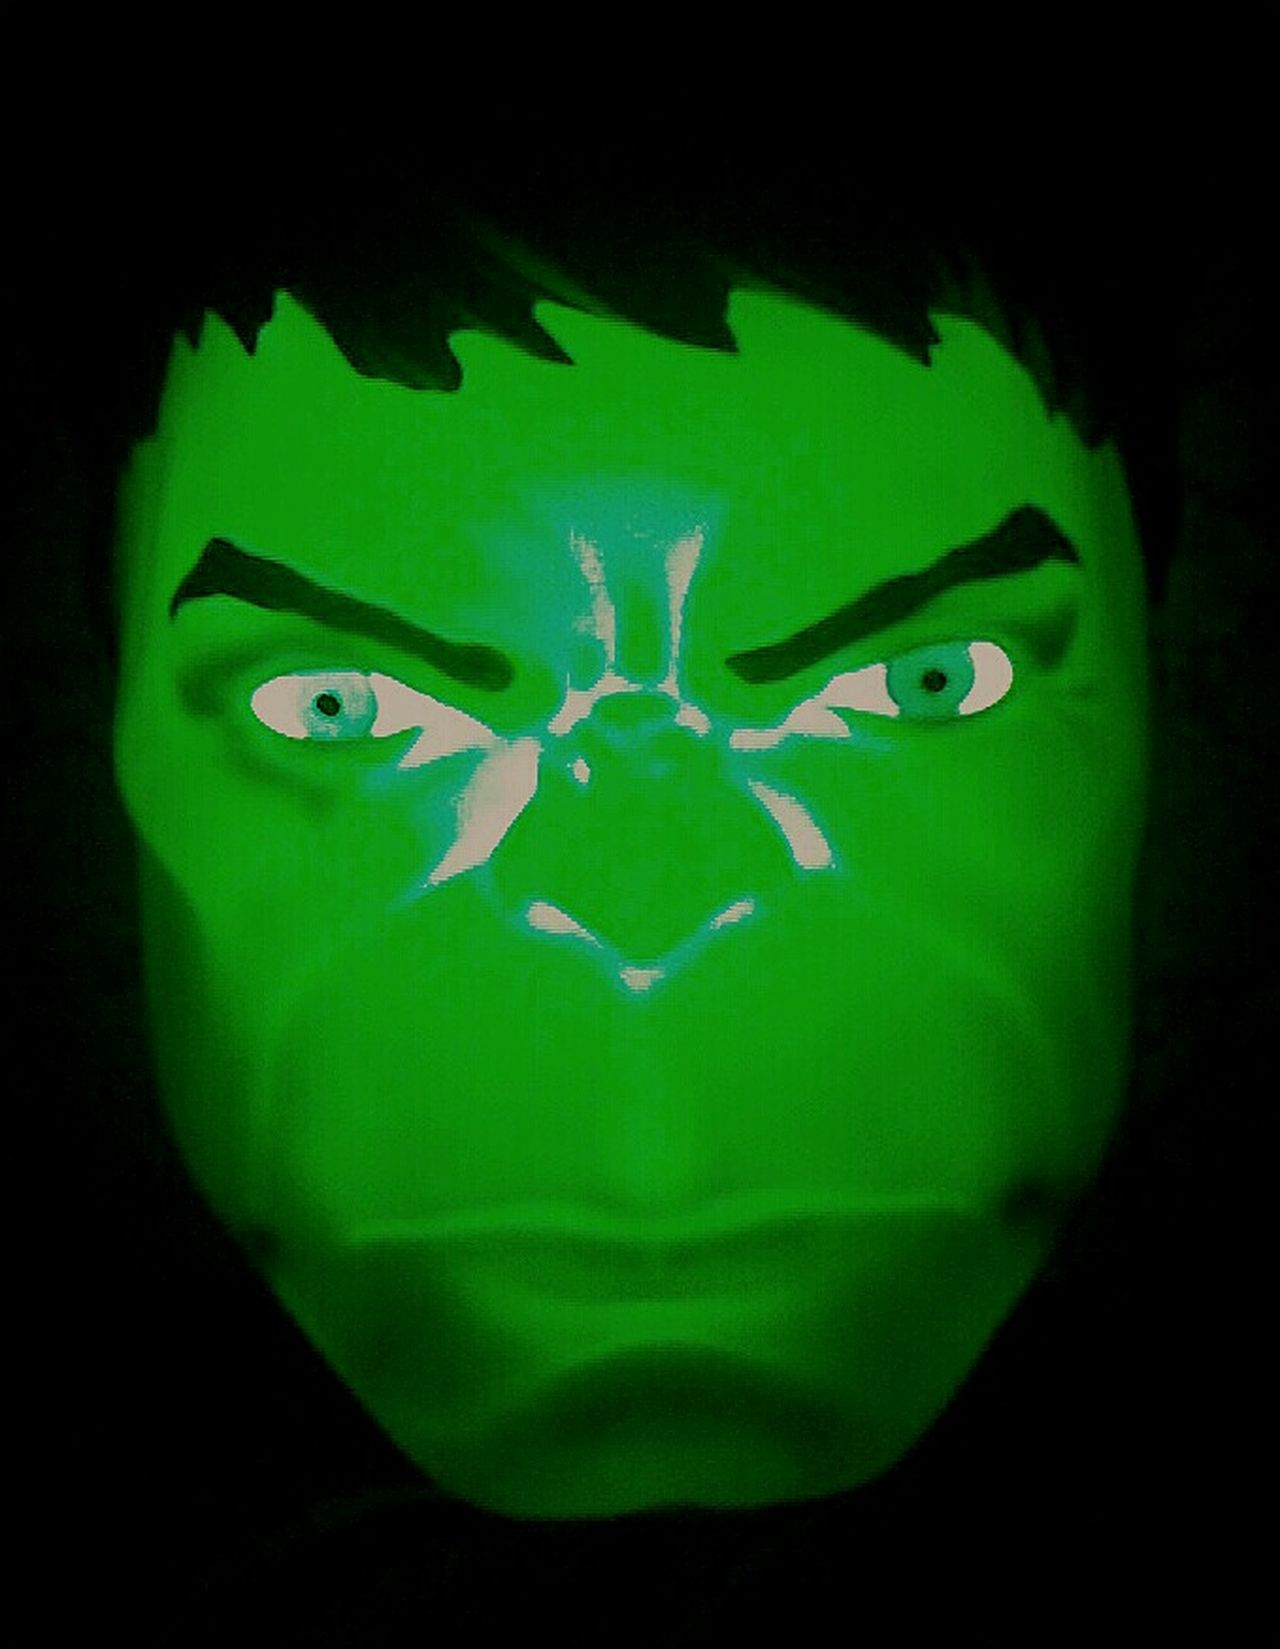 The Hulk Hulk MarvelHeroes Green Face Action Hero Marvel Comics Greenface The Incredible Hulk Superheroes Super Hero Green Green Green!  Faces Green Face Green Color The Hulk ! Theincrediblehulk Thehulk Pulse Rate Rising The Green Man Marvel Marvellengends Hulkface Marvelcomics Avengers